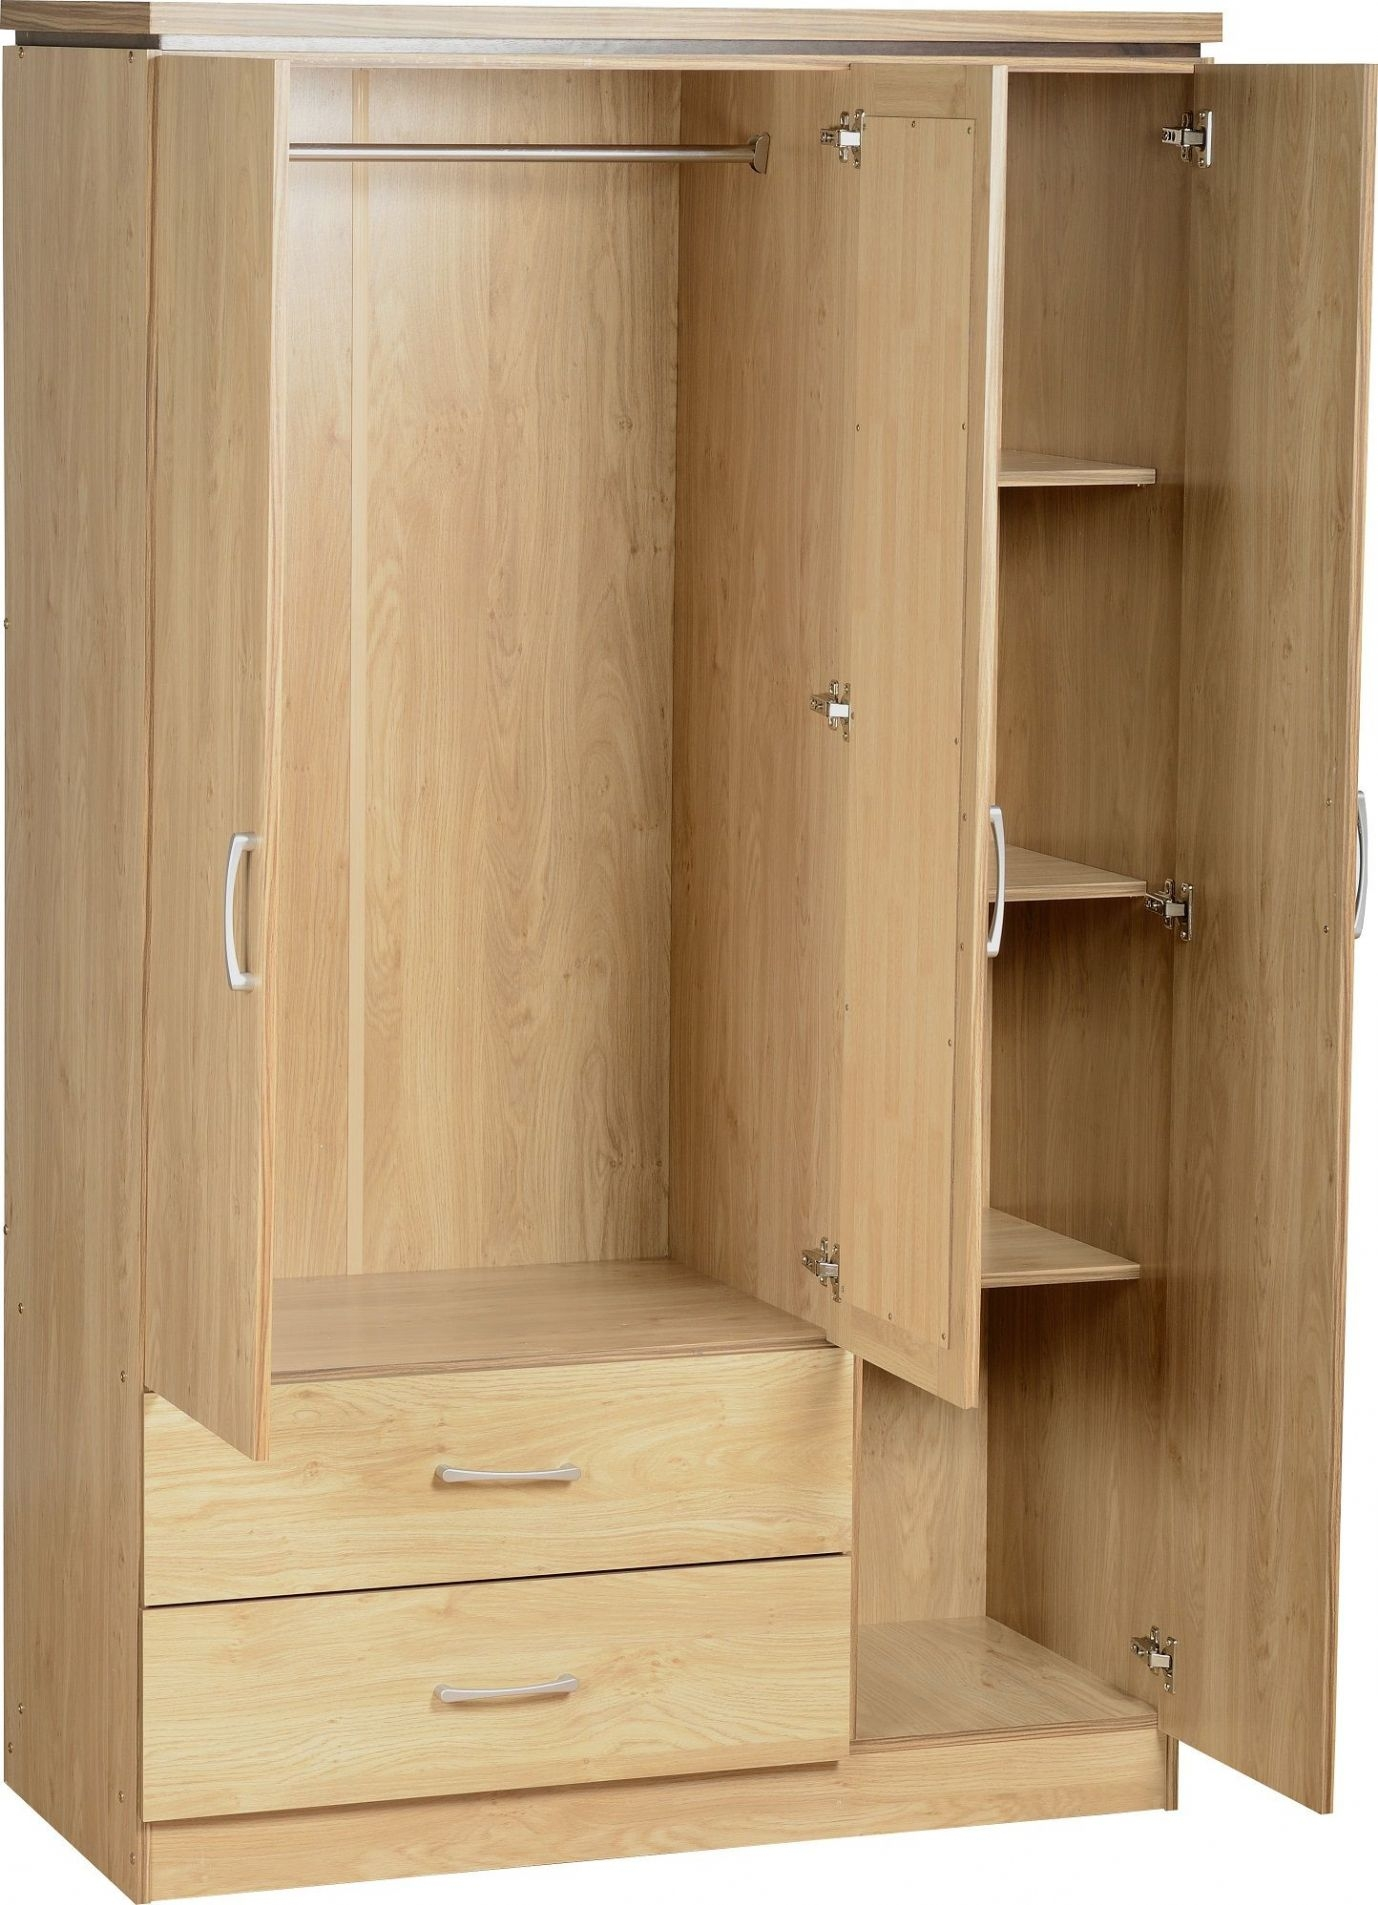 Wardrobes With Shelves Door Mirror Wardrobe With Shelves Mirror Regarding Wardrobe With Shelves And Drawers (Image 15 of 15)